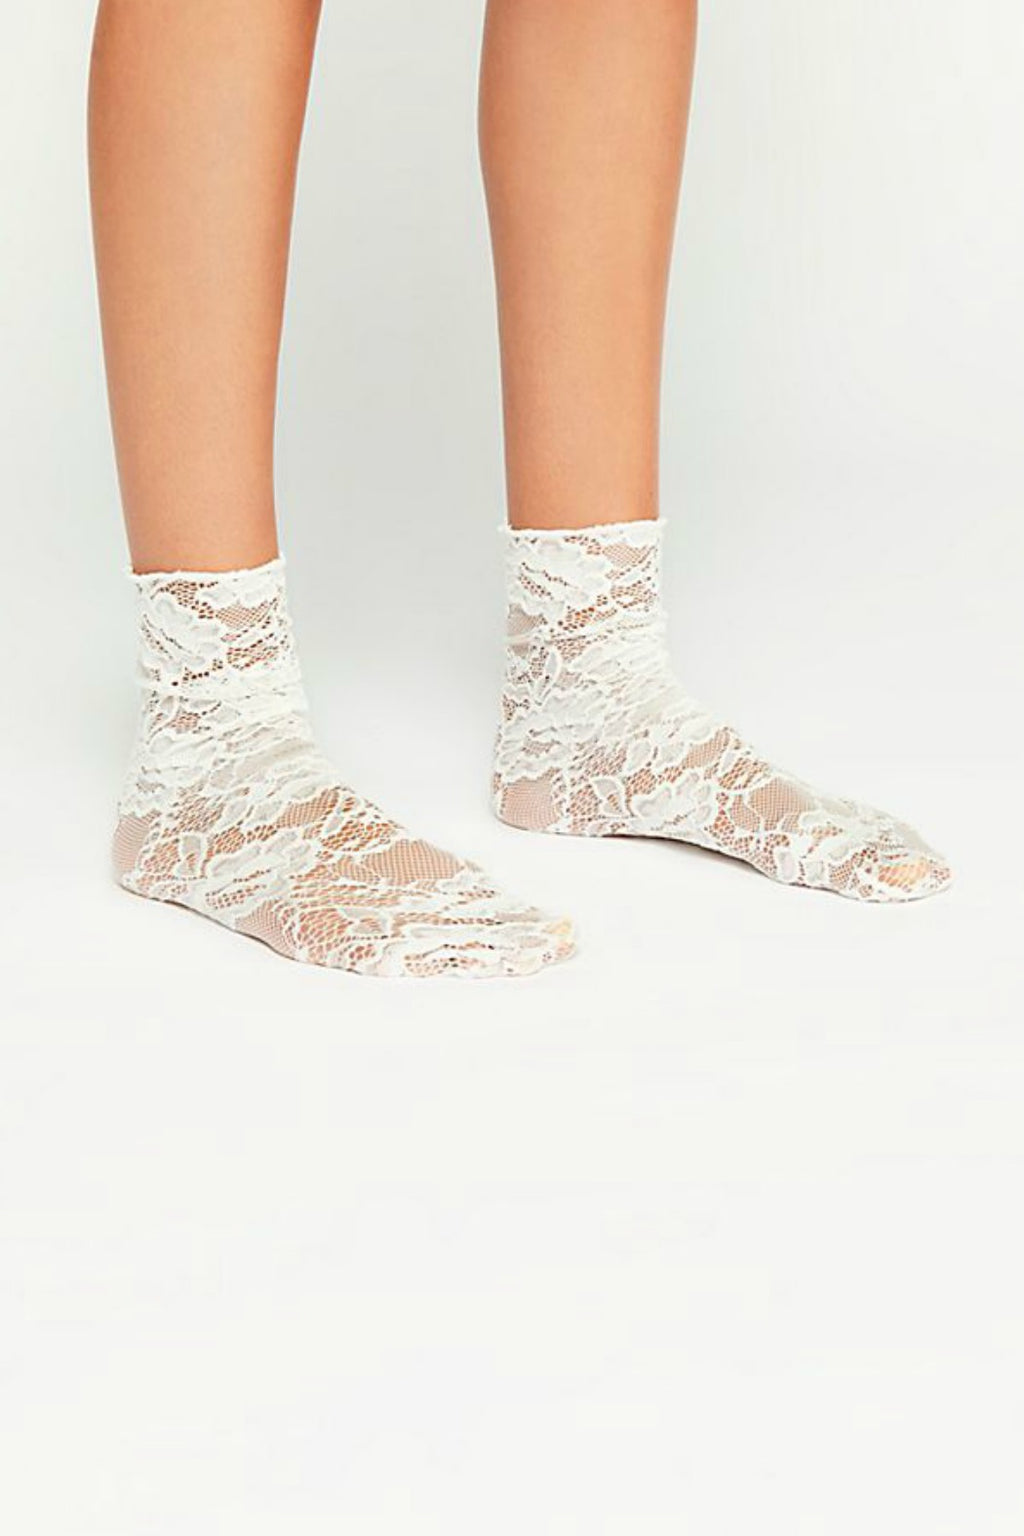 Free People Bella Lace Crew Sock - Ivory